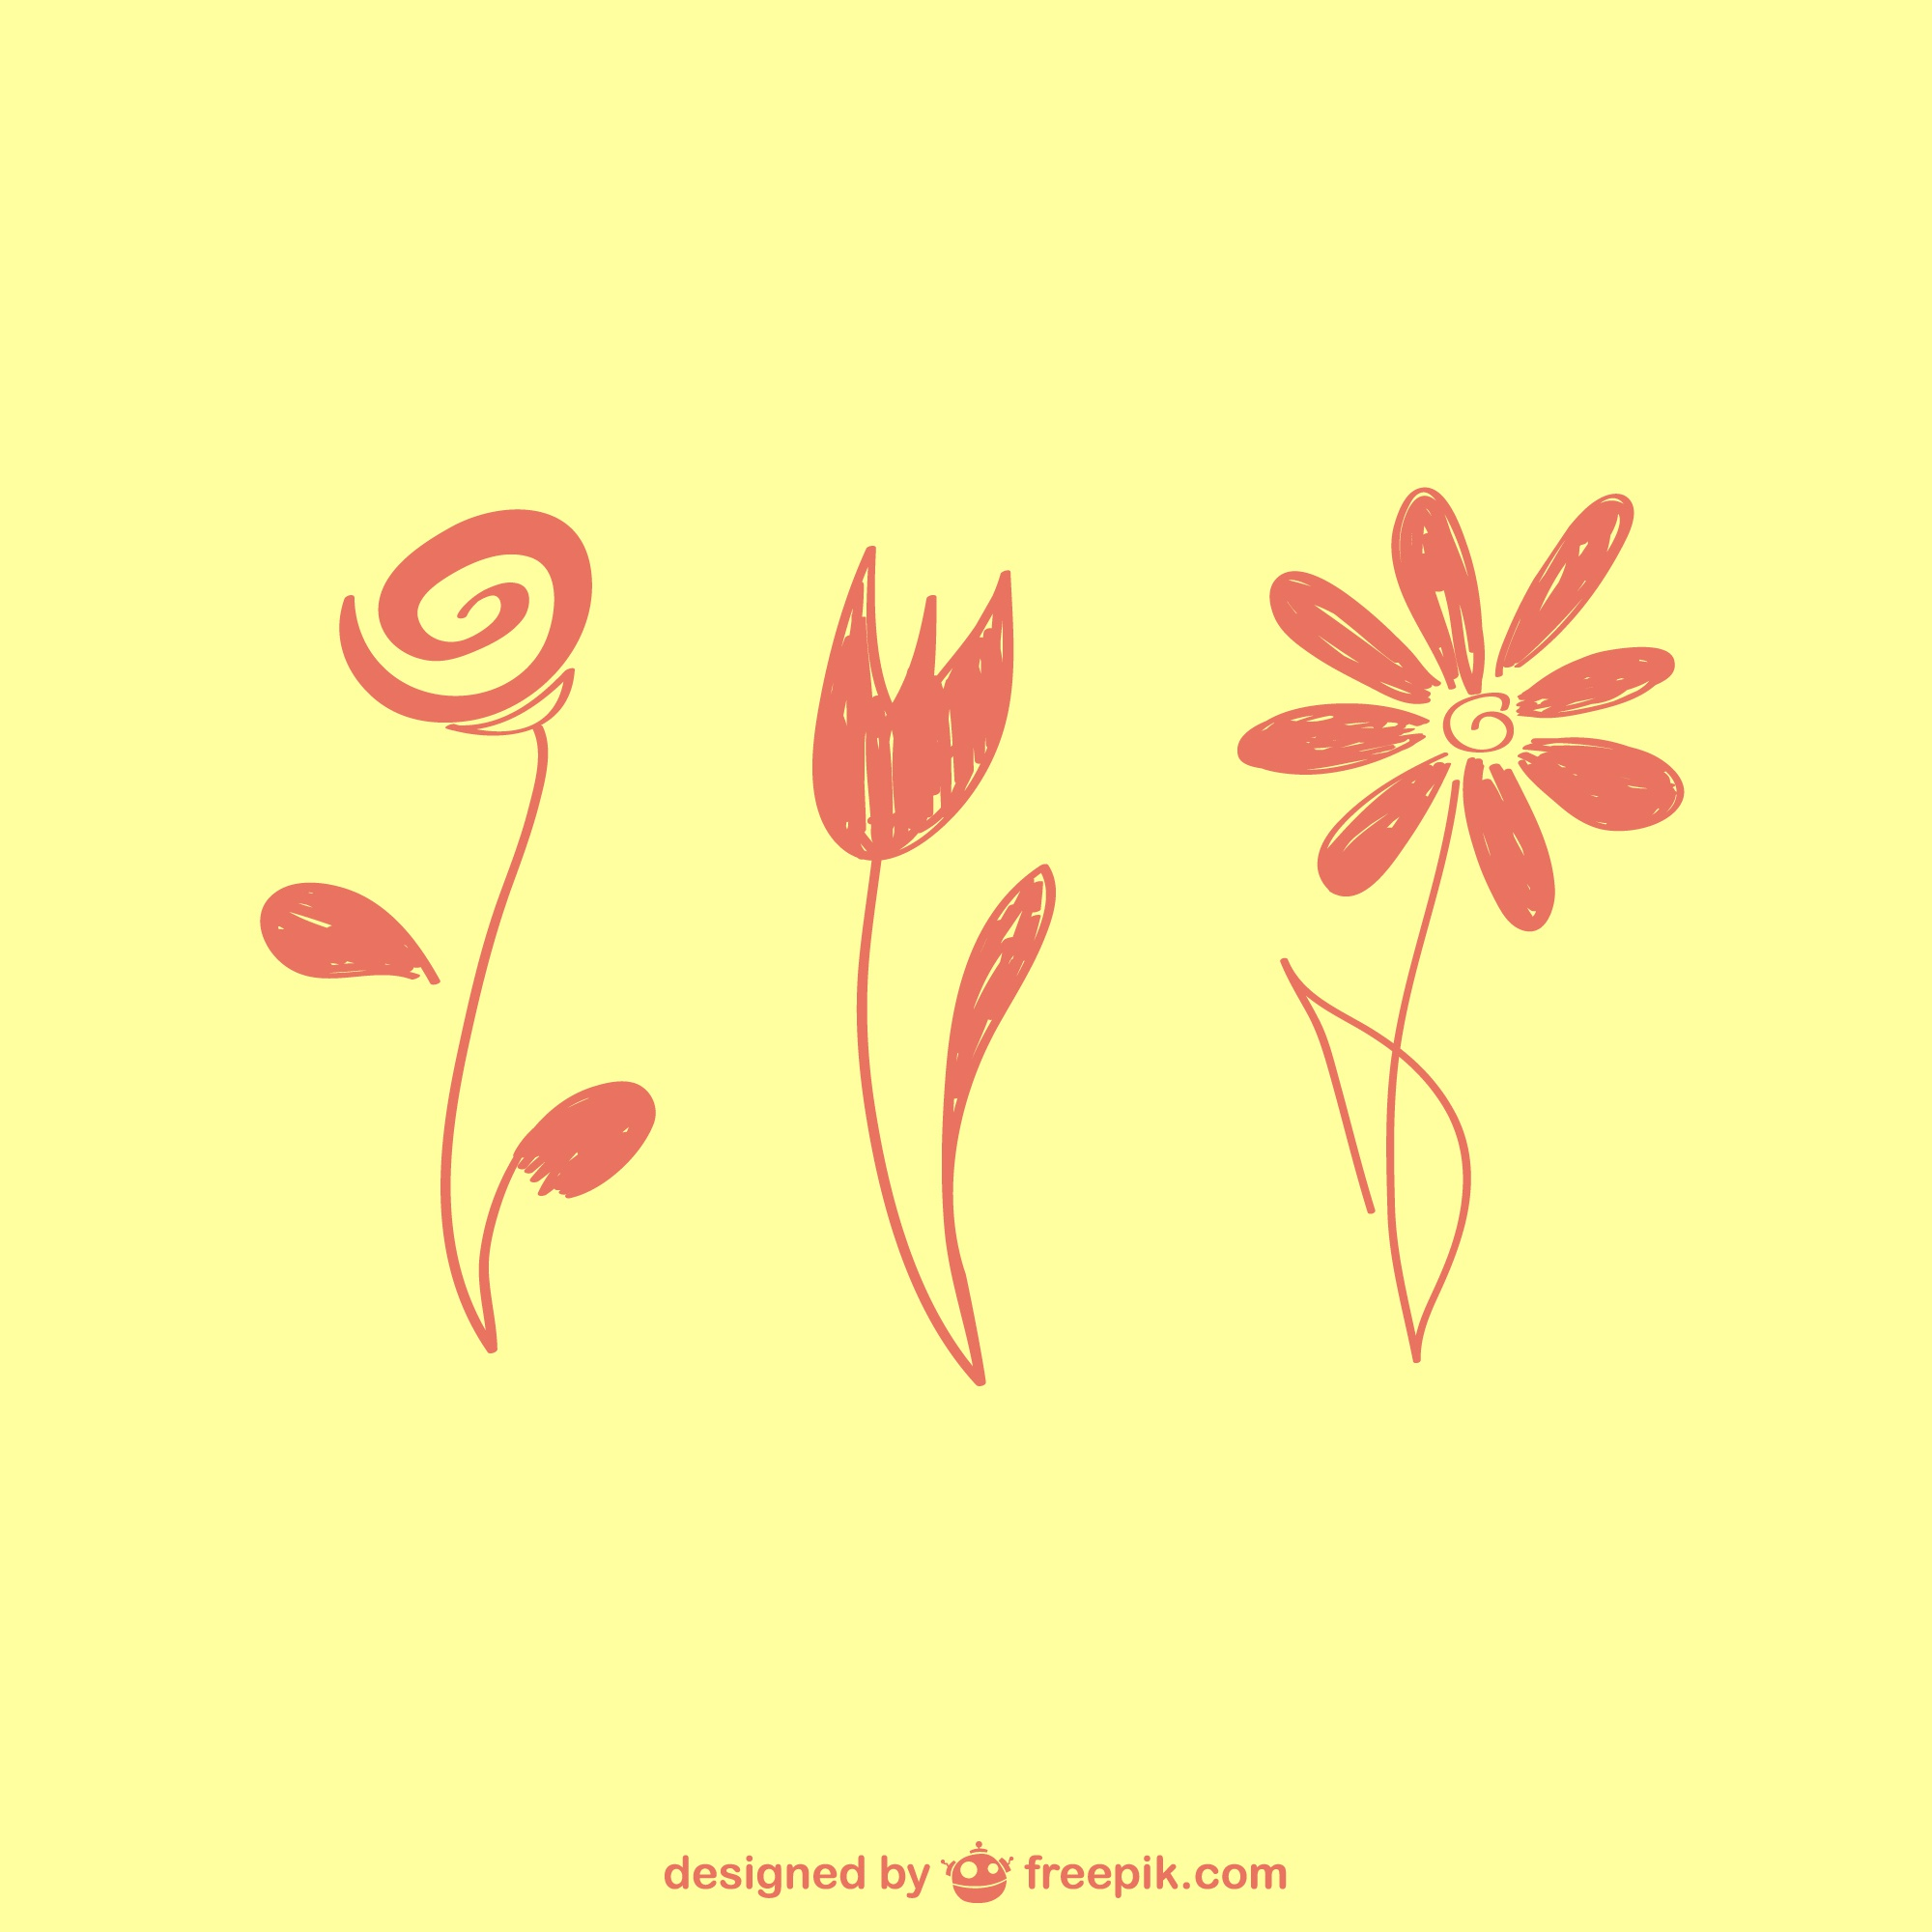 Floral vector free graphic elements